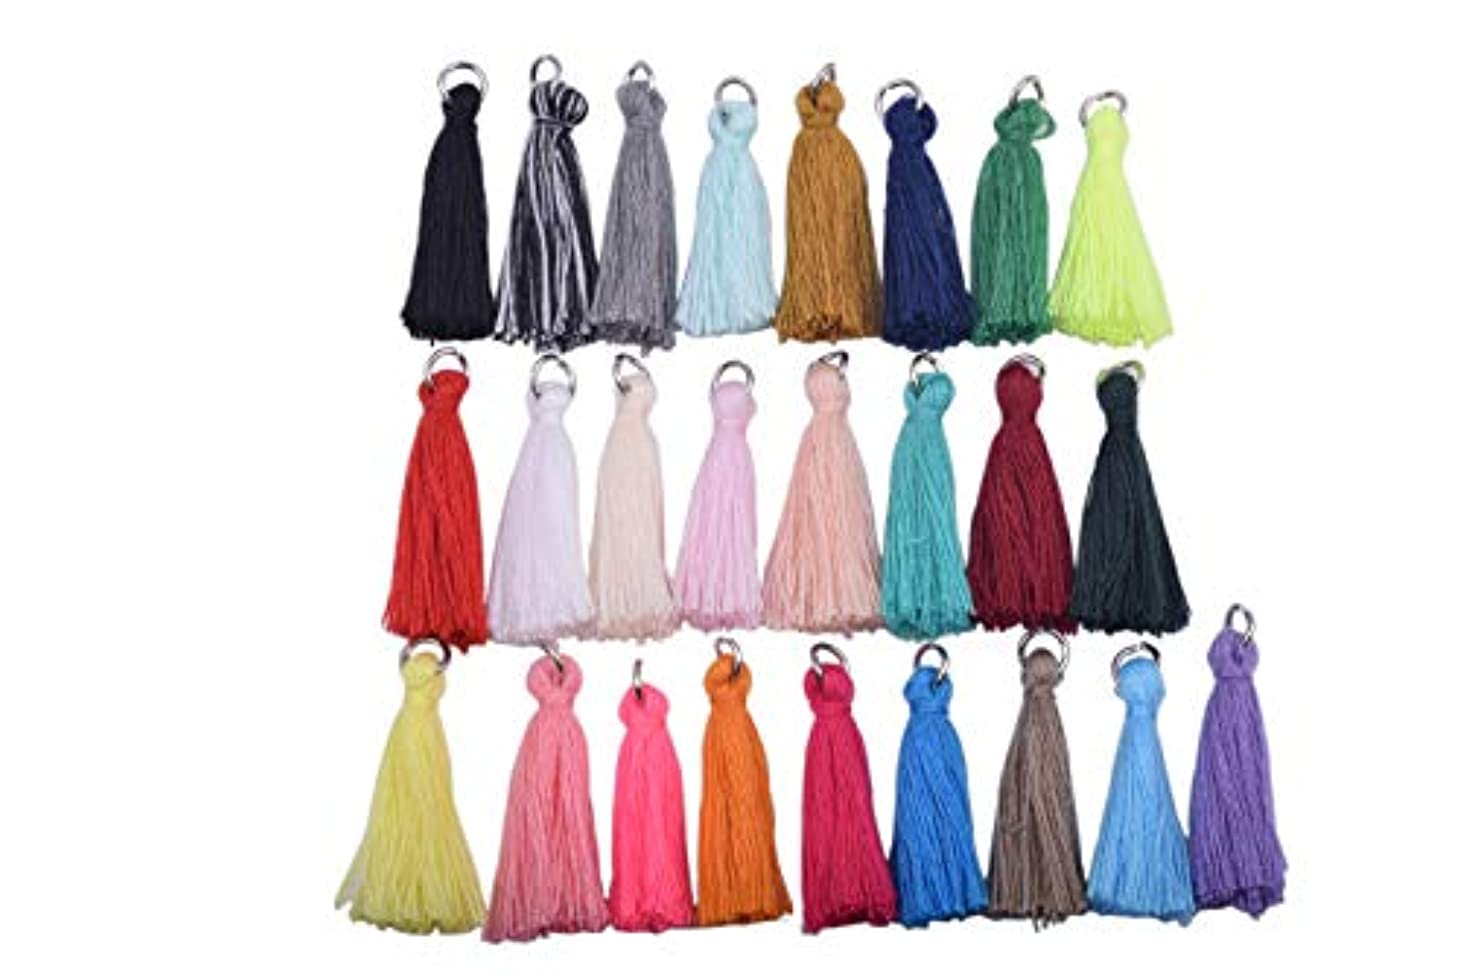 KONMAY 50PCS 1.4''(3.5cm) Tiny Craft Tassels with Rhodium Jump Ring for Jewelry Crafting Projects Garments(Randomly Mixed)